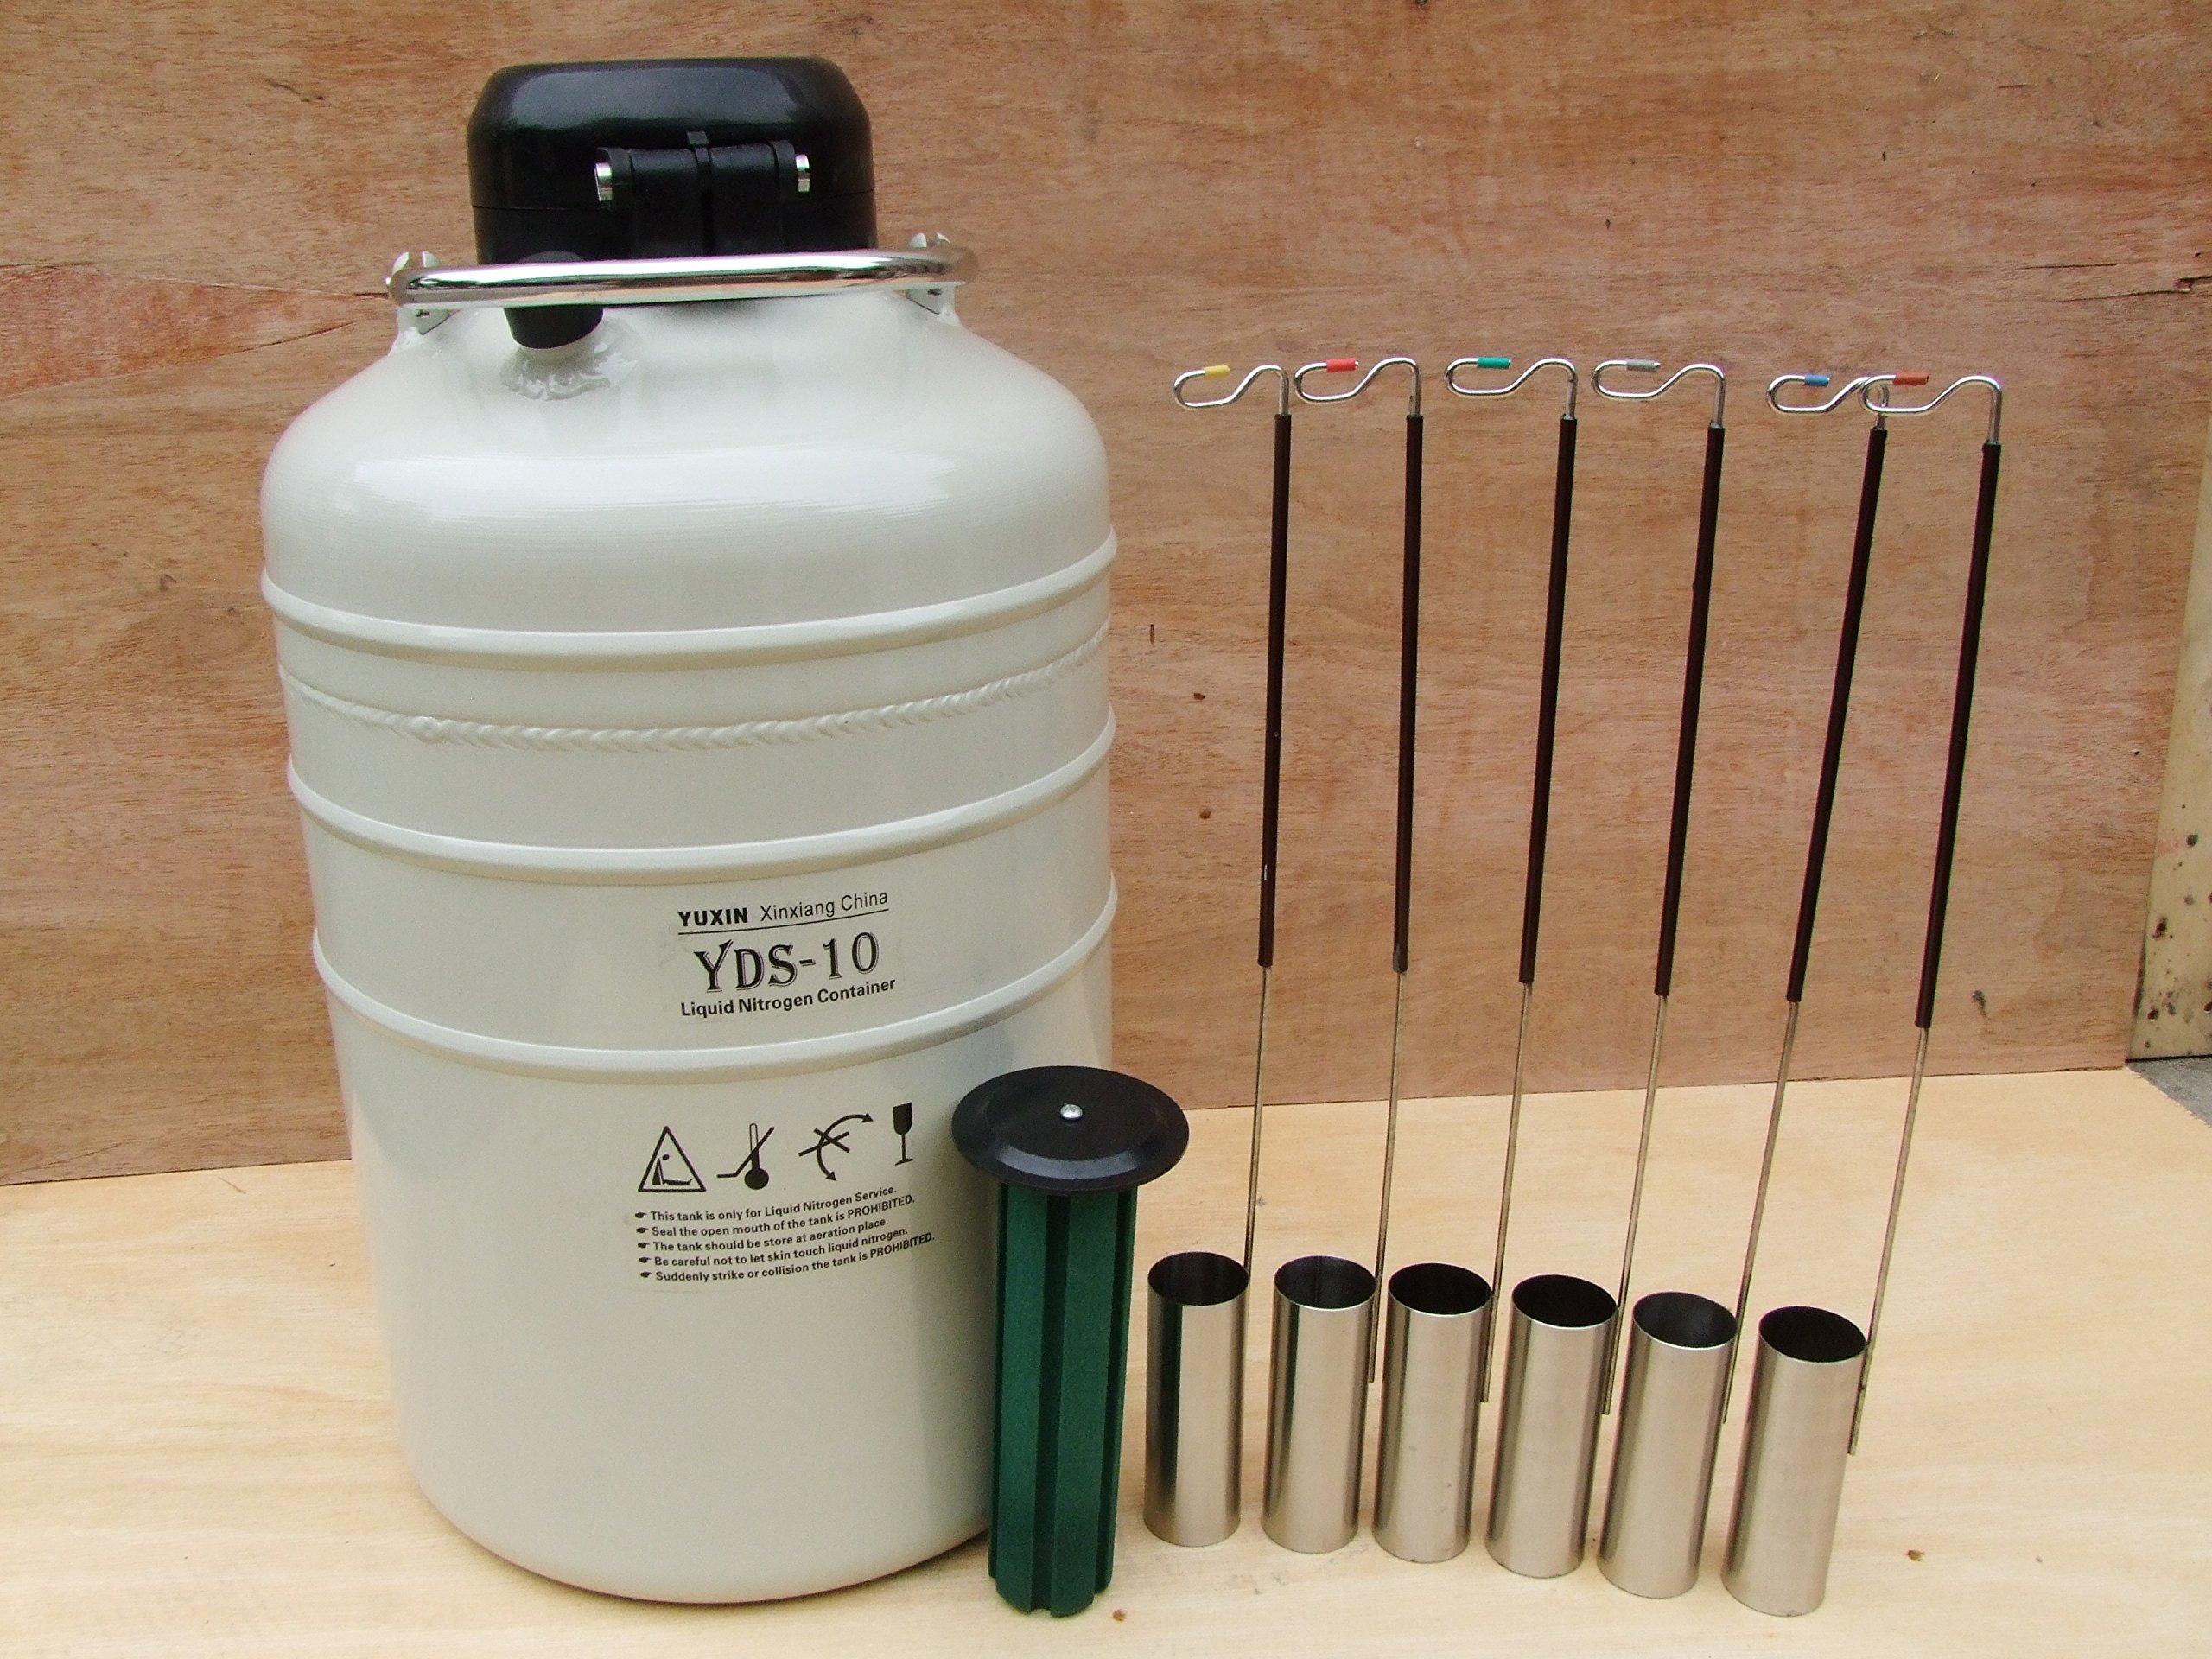 10 L Cryogenic Container Liquid Nitrogen Ln2 Tank with Straps and Carry Bag